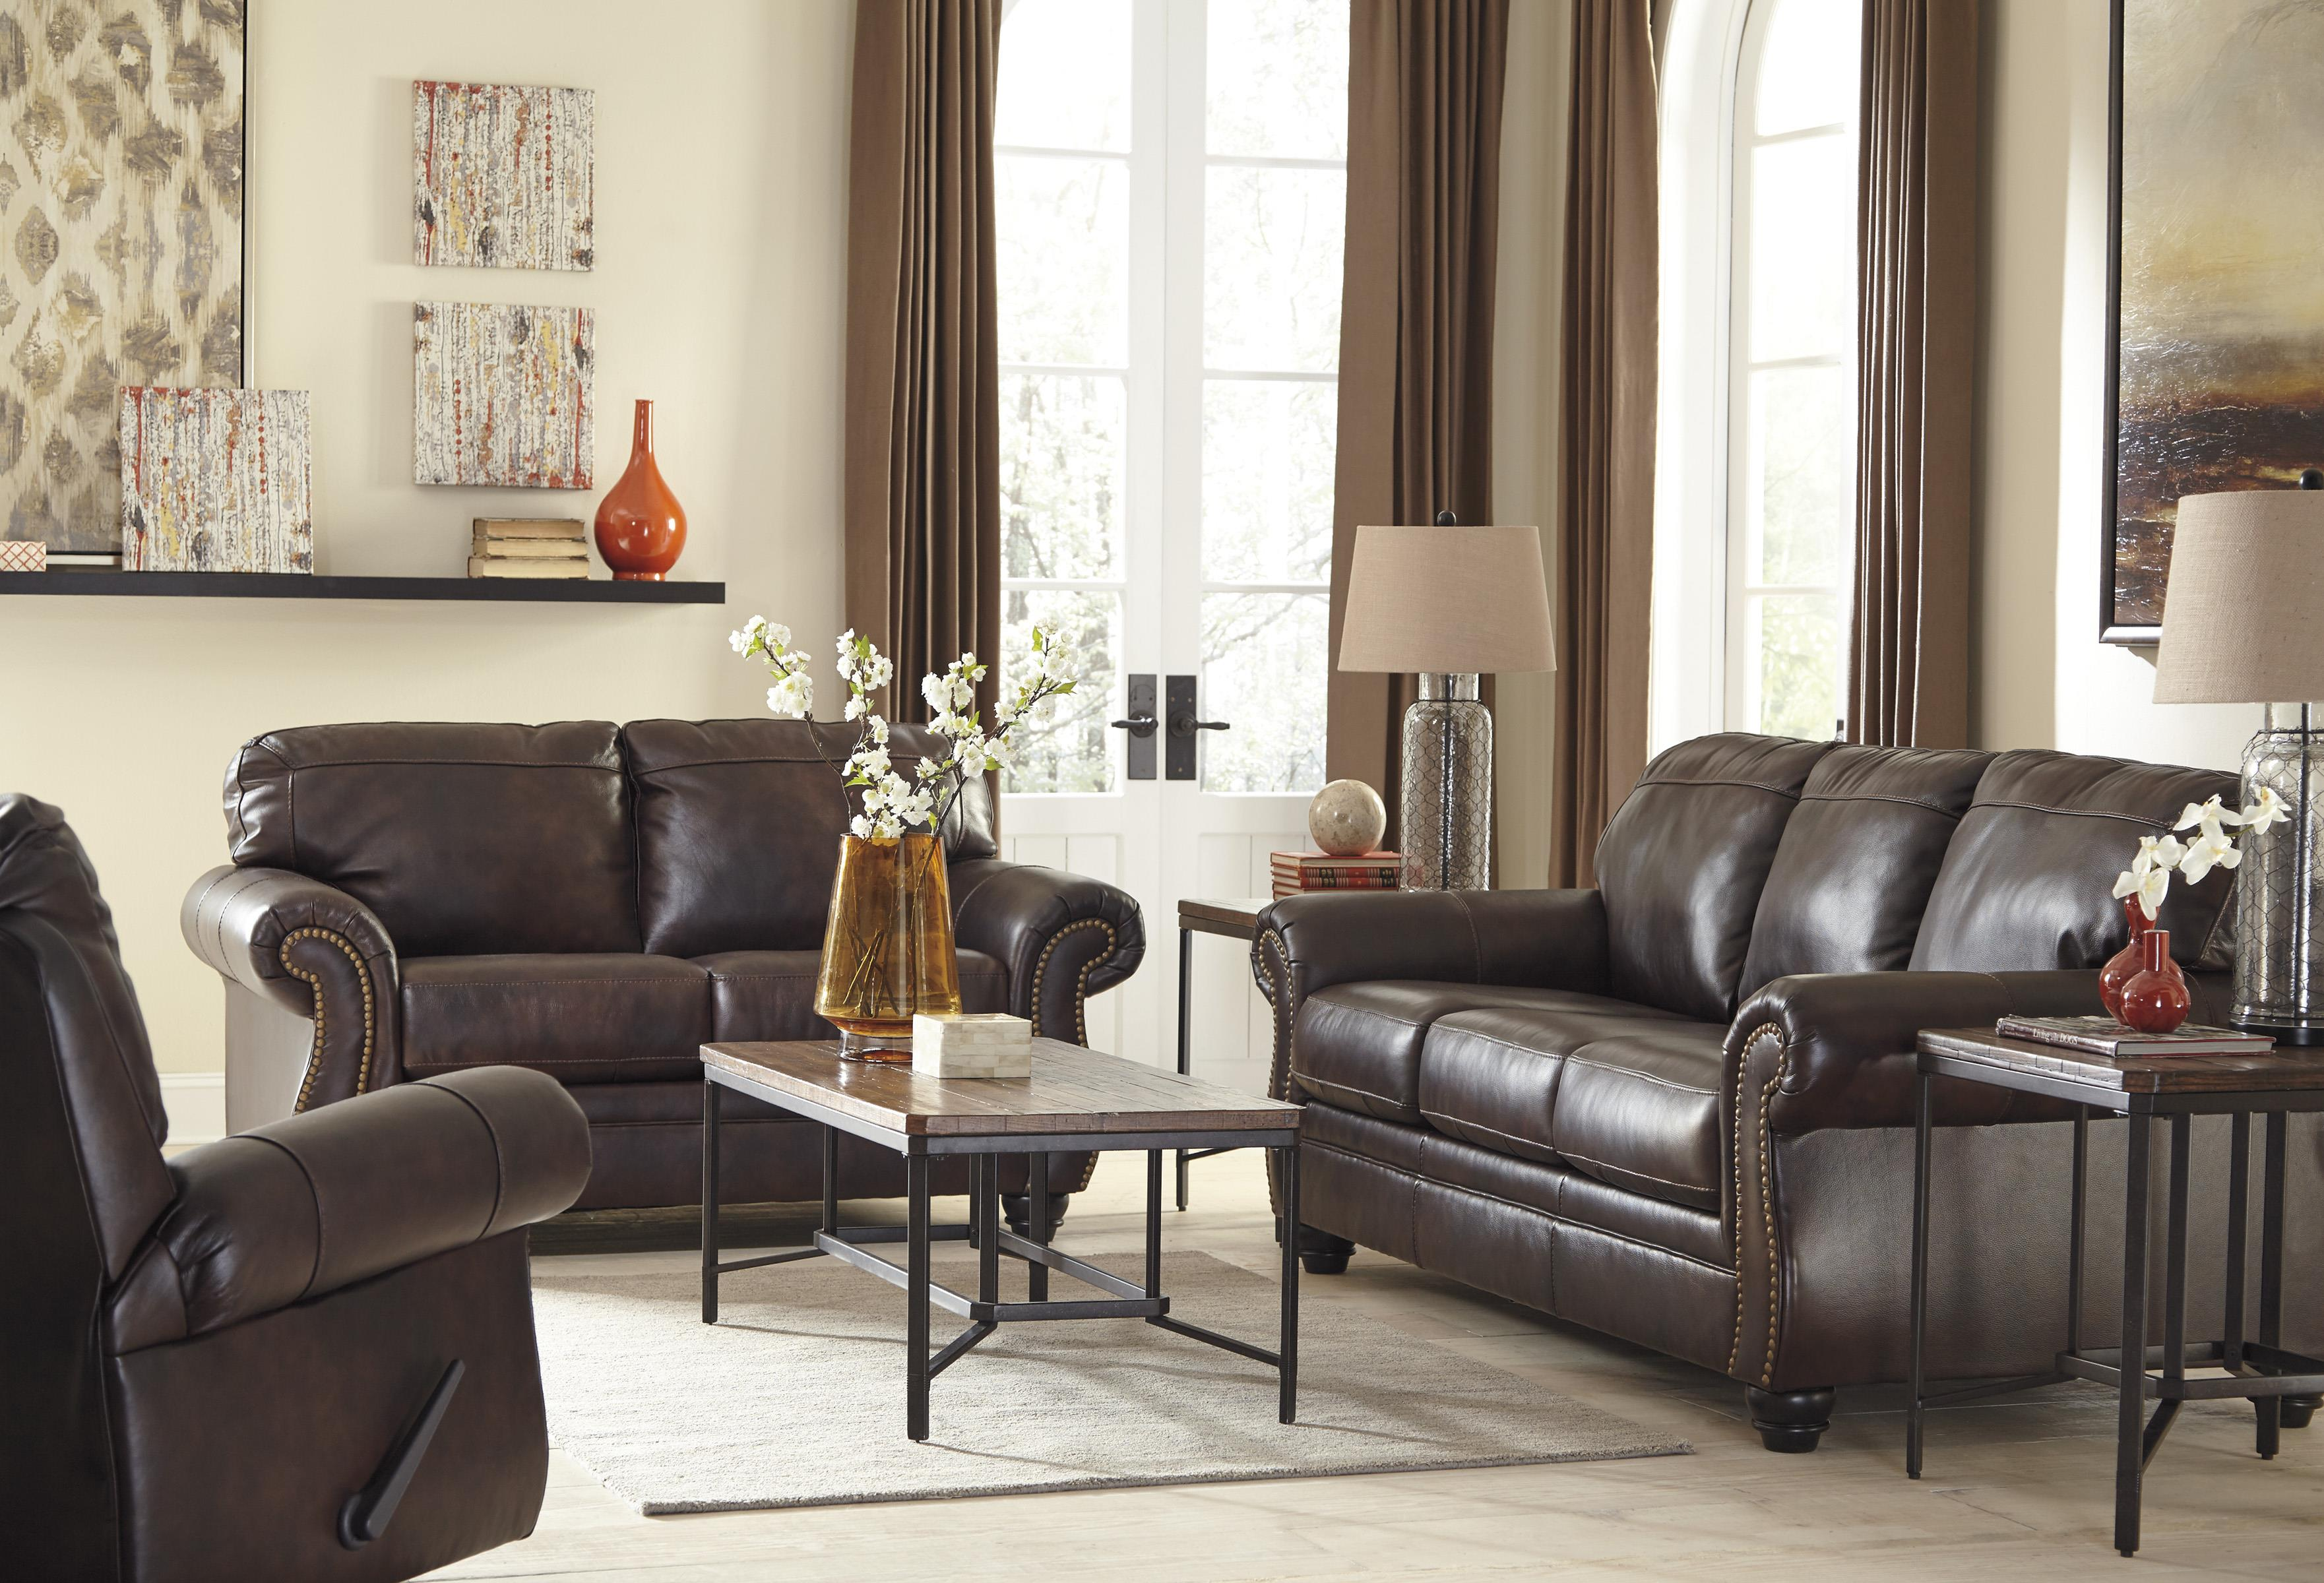 rotmans casual pete designs couches couch pinterest panama pin sofa